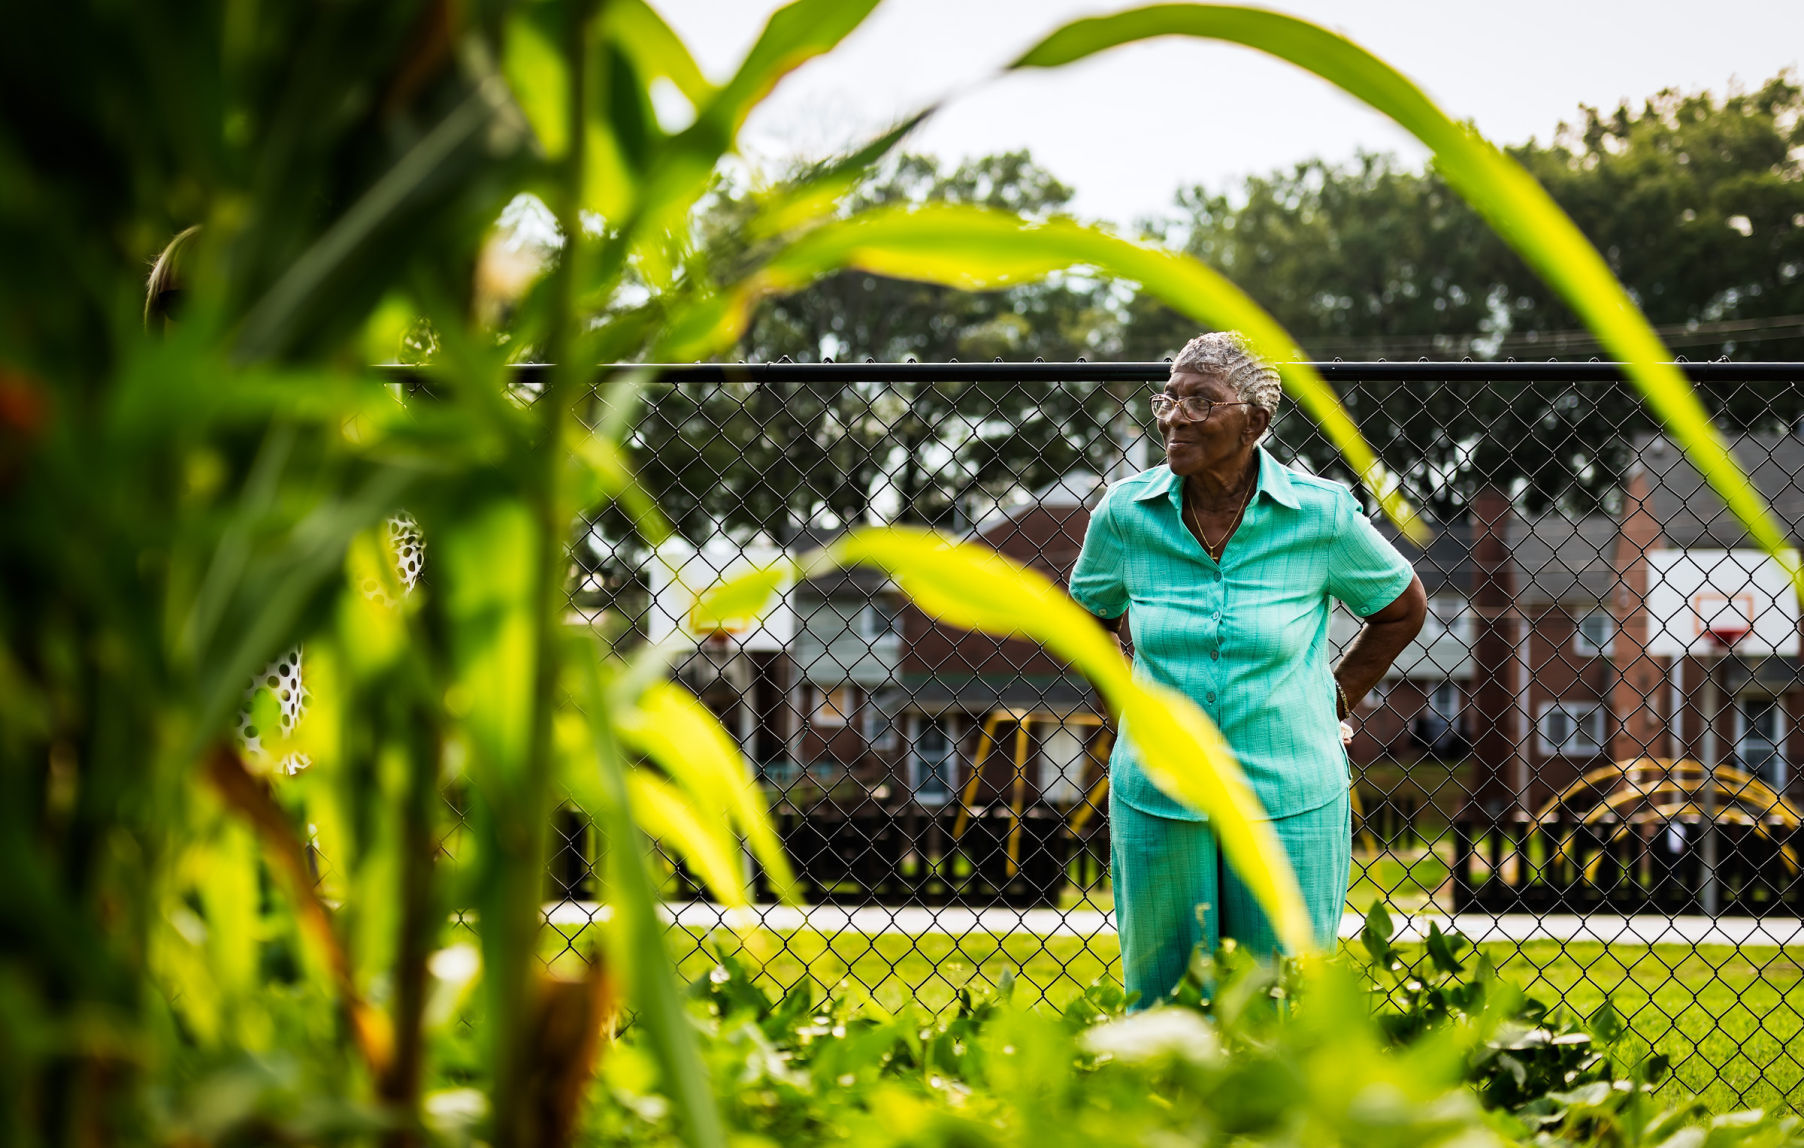 Mattie Young And The Cleveland Avenue Community Garden